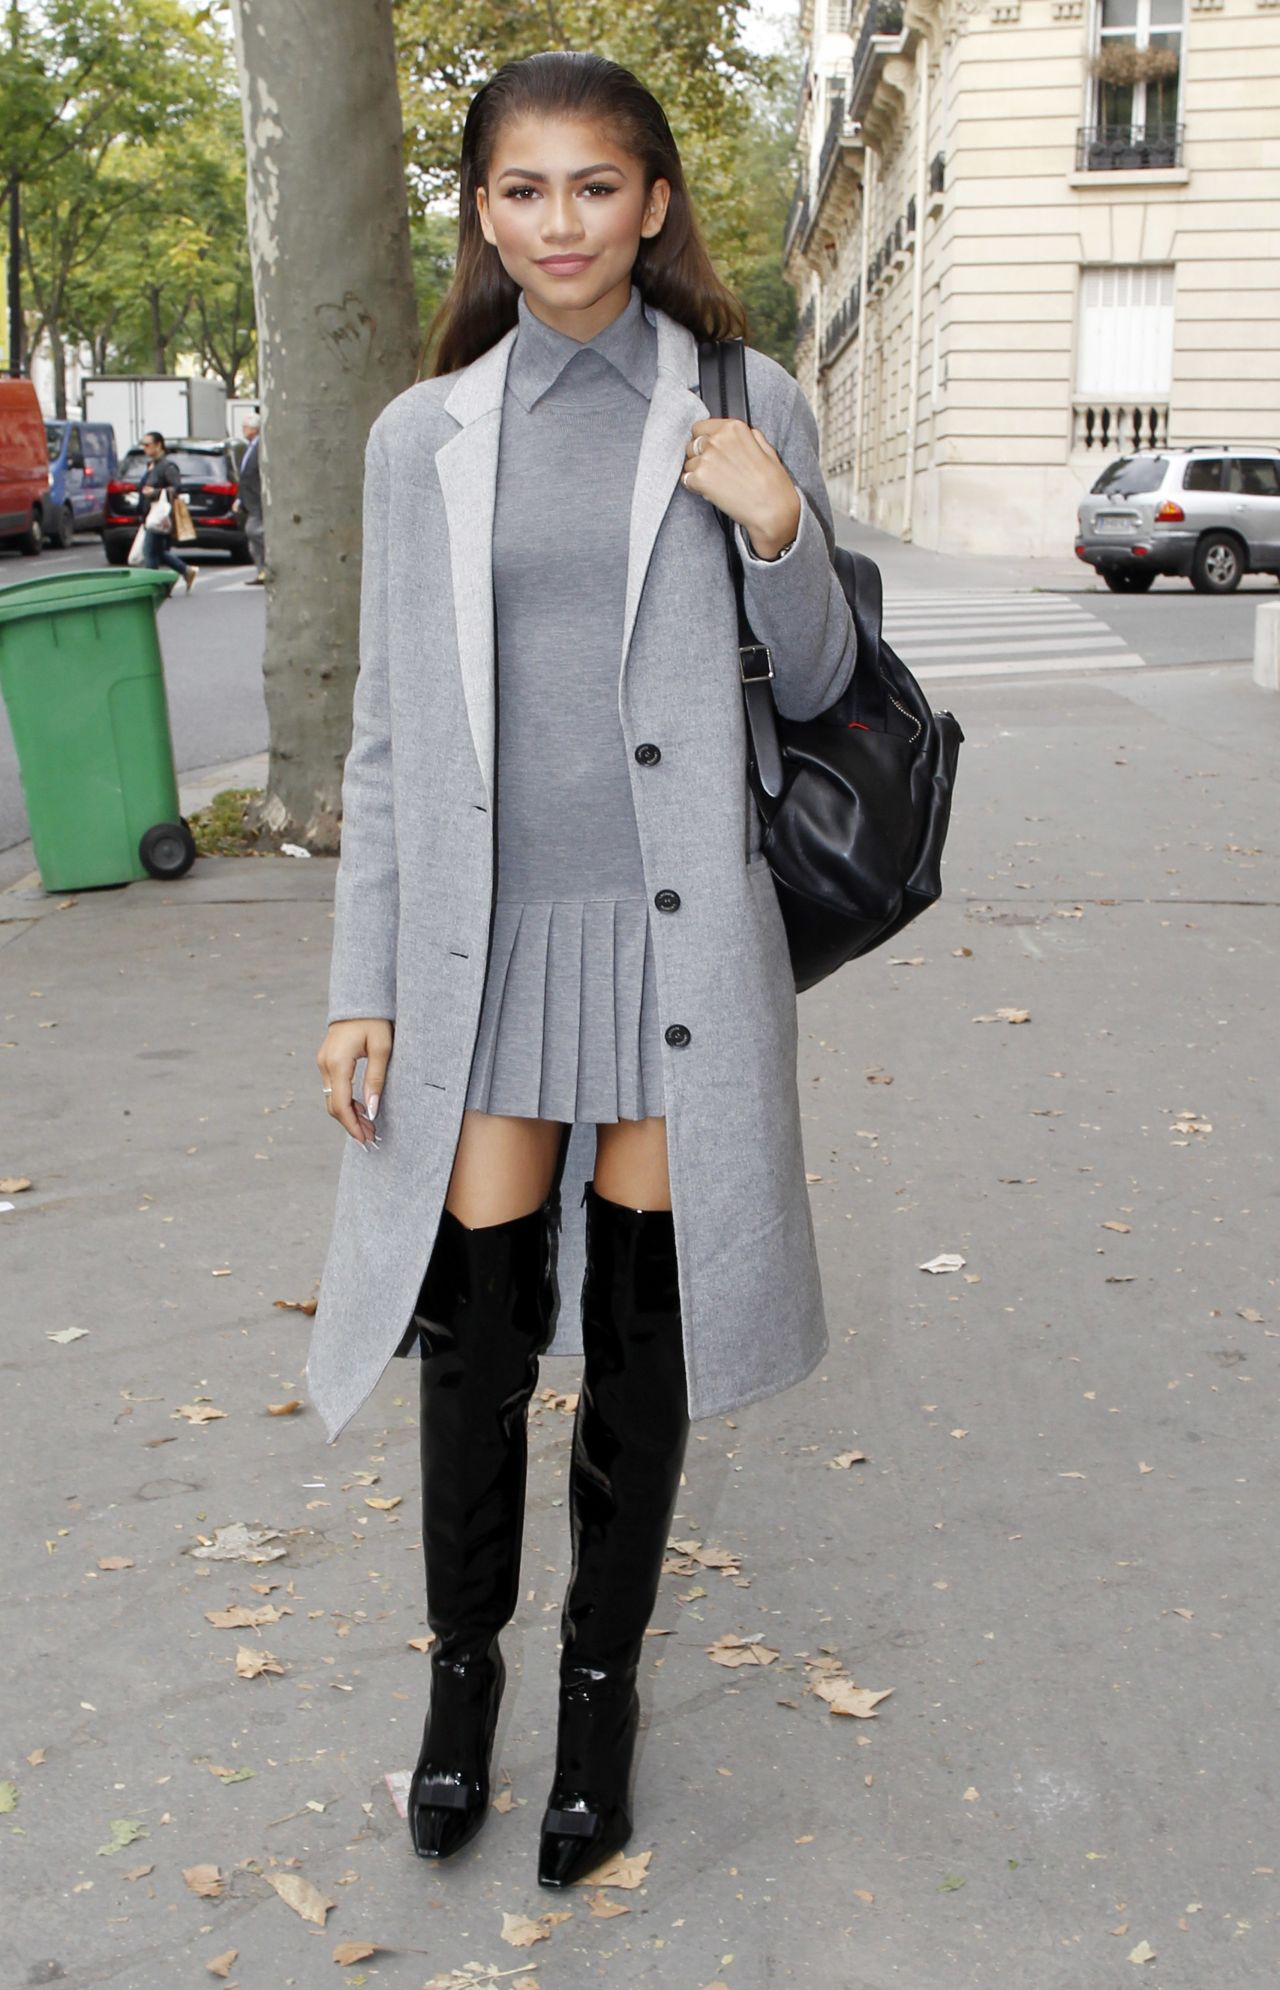 Zendaya street fashion out in paris october 2015 Fashion style october 2015